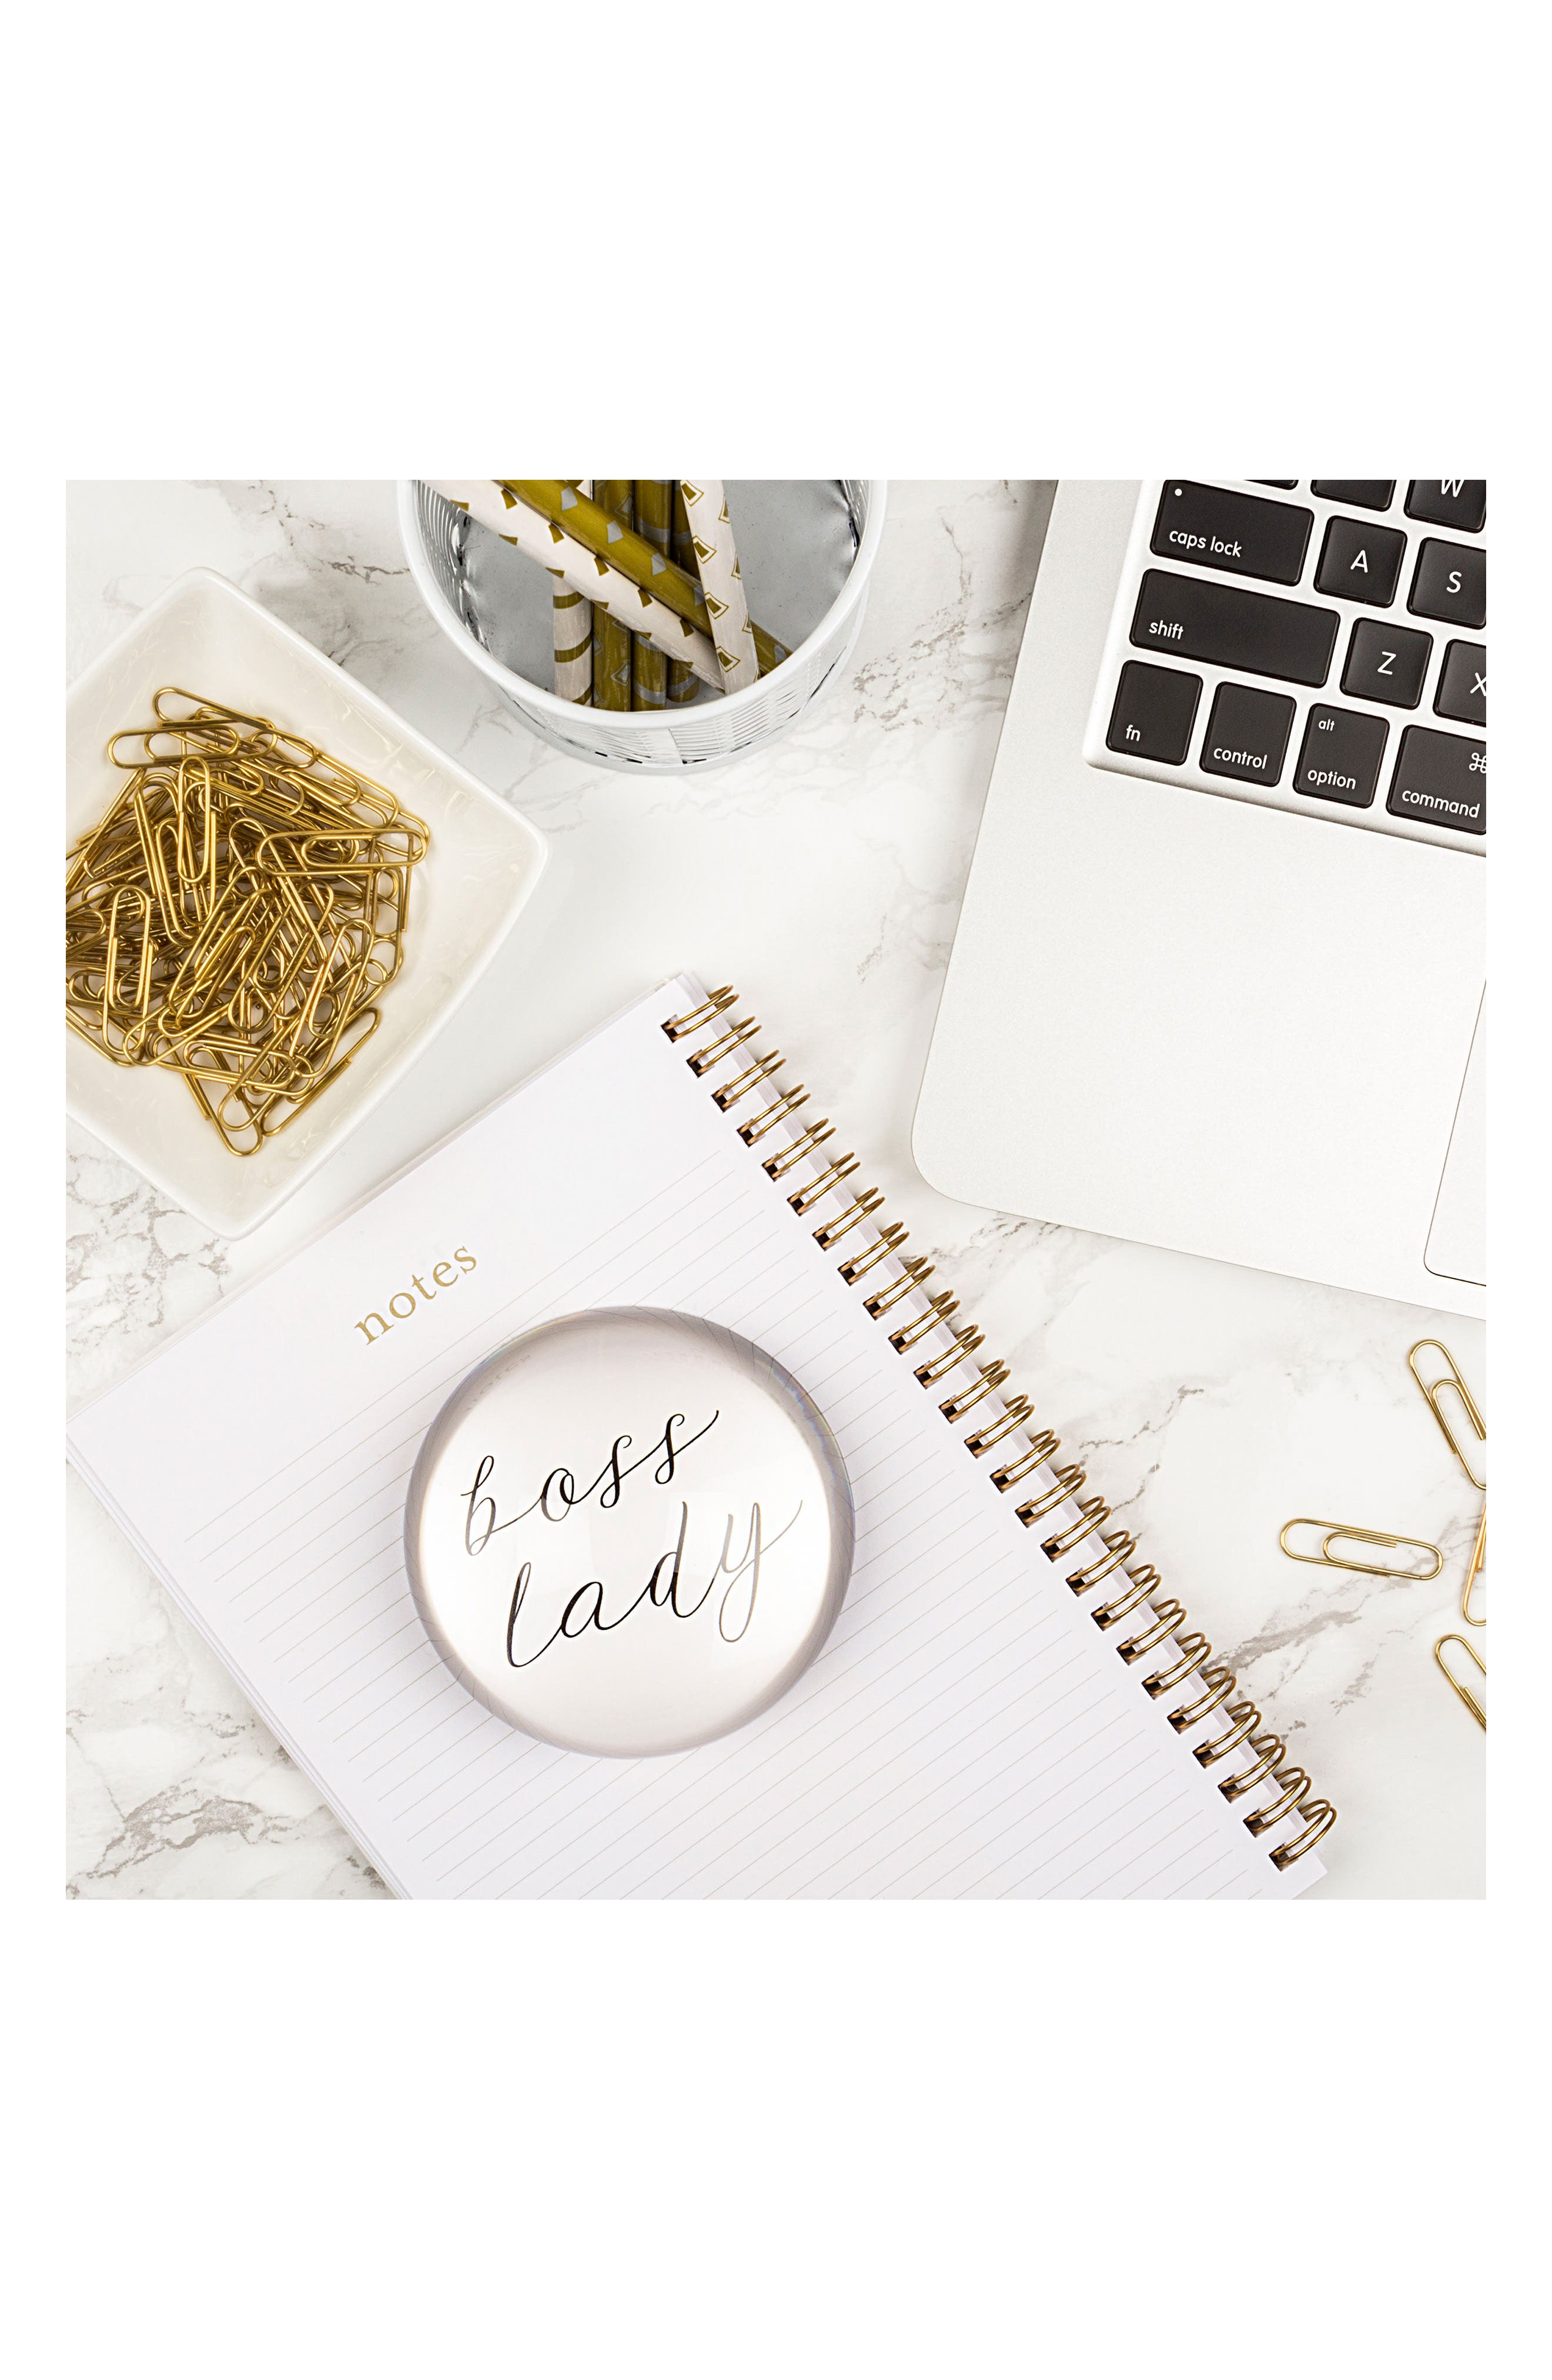 Boss Lady Glass Paperweight,                             Alternate thumbnail 5, color,                             100